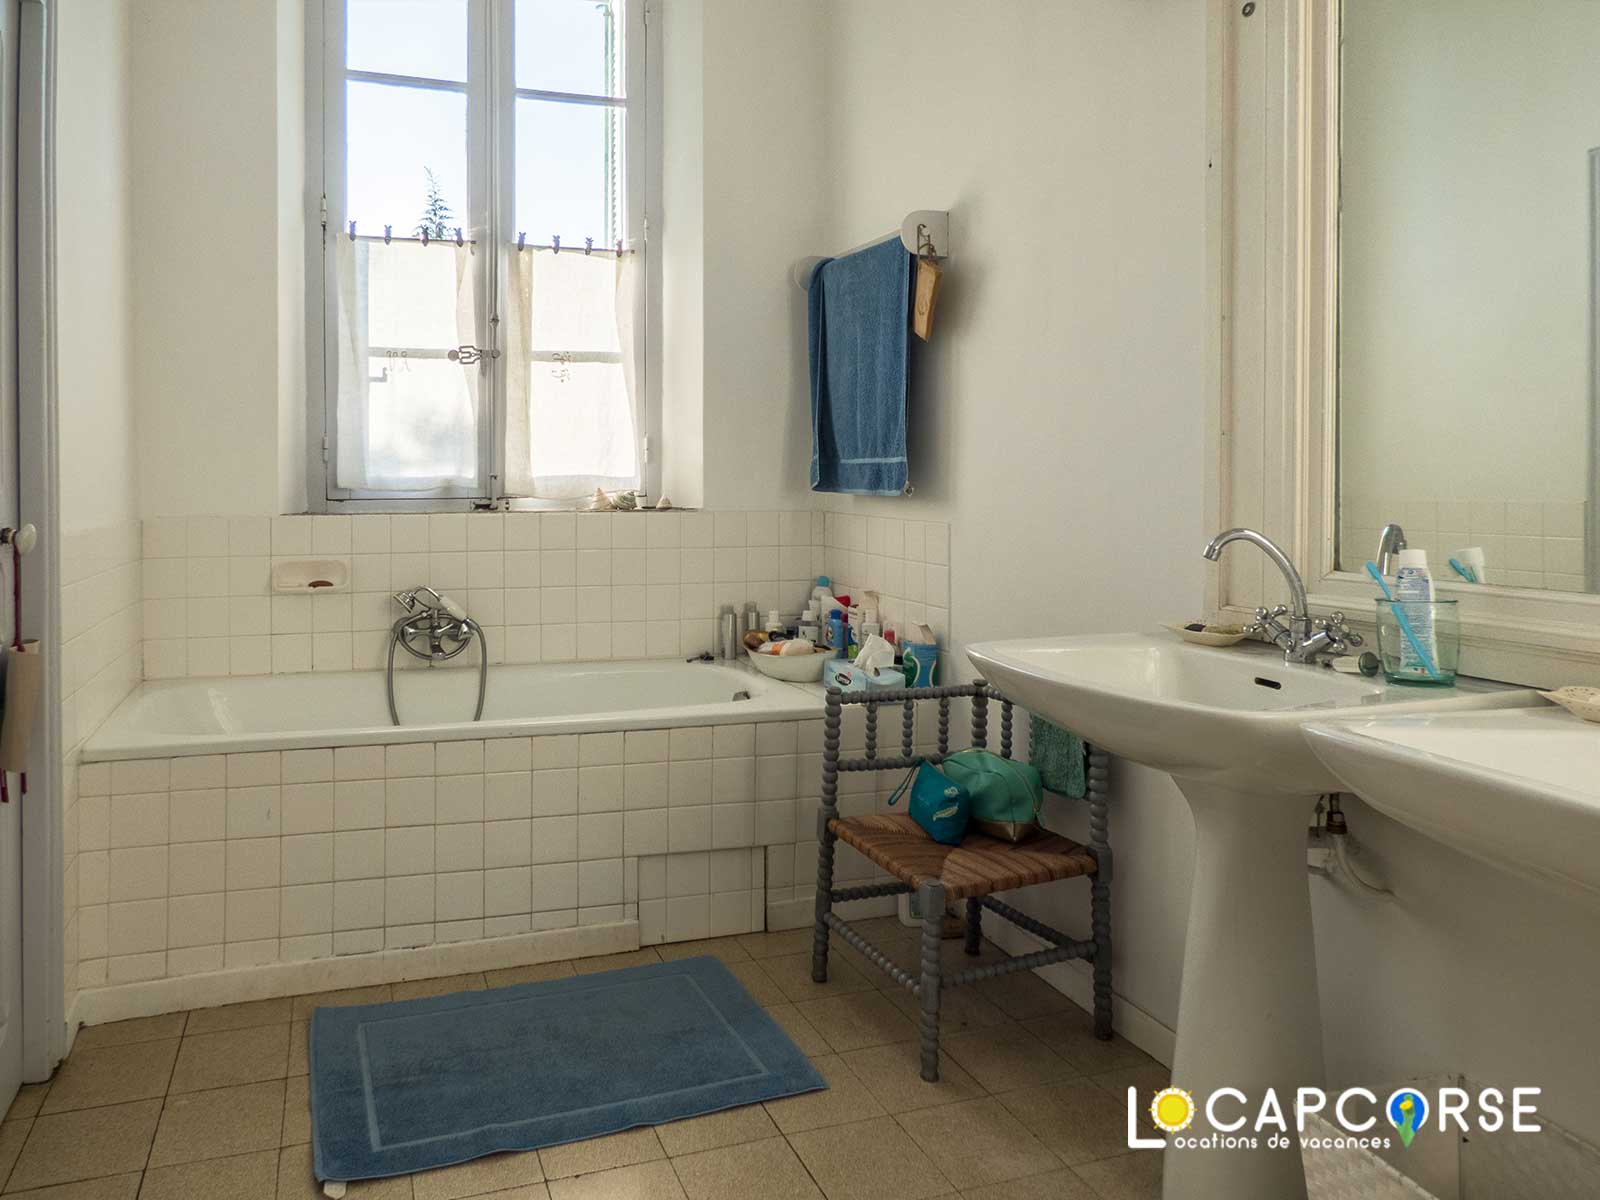 Locations Cap Corse - the bathroom is also very bright with a view of the garden